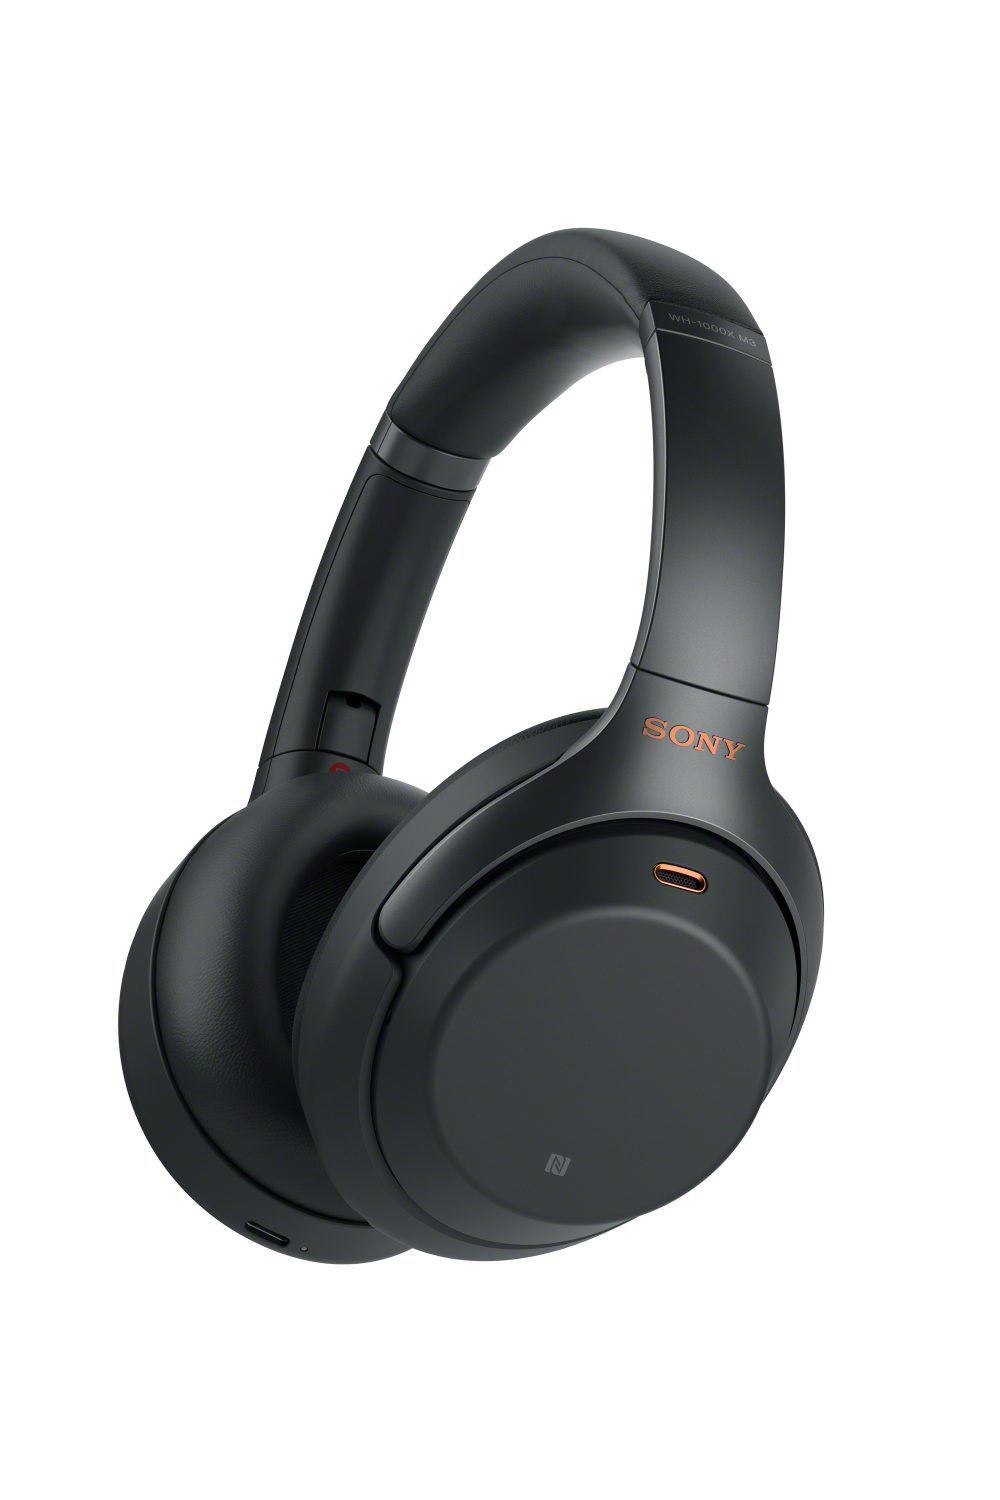 Lose Yourself In The Music With The Sony WH-1000XM3 Headphones From BestBuy